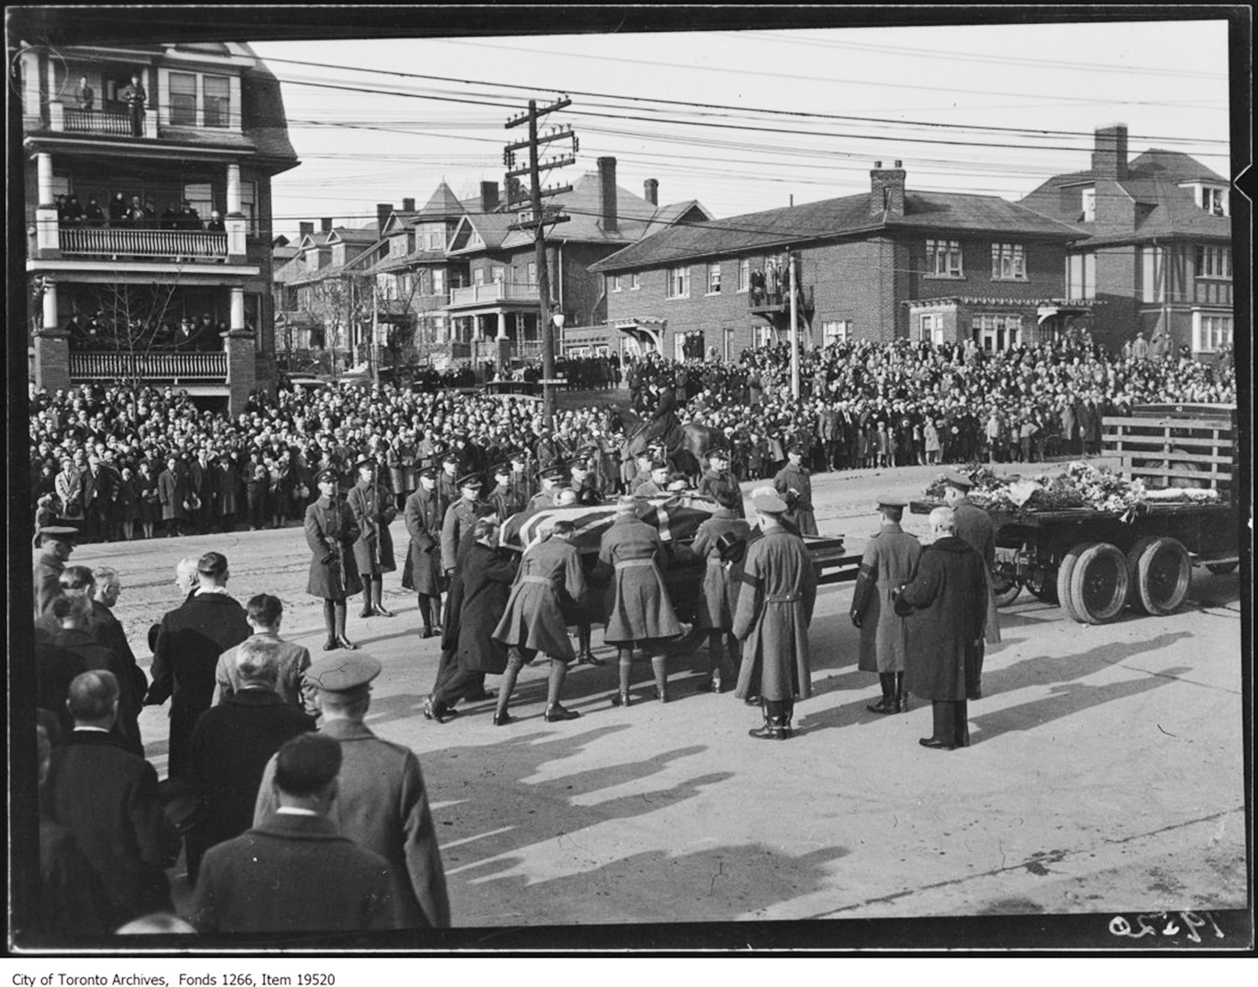 Military and civilian men place the coffin of Wing Commander William Barker onto the hearse that will carry it through the streets of Toronto to his final resting place. Wing Commander Barker, who flew with the Royal Flying Corps during the First World War, died in a tragic accident on March 12, 1930. His state funeral, witnessed by 50,000, was the largest the city had ever seen. He was interred in Mount Pleasant Cemetery, where a monument in his honour was dedicated in 2011. Wing Commander Barker was, and remains, Canada's most decorated war hero. PHOTO: City of Toronto Archives, Fonds 1266, Globe and Mail fonds